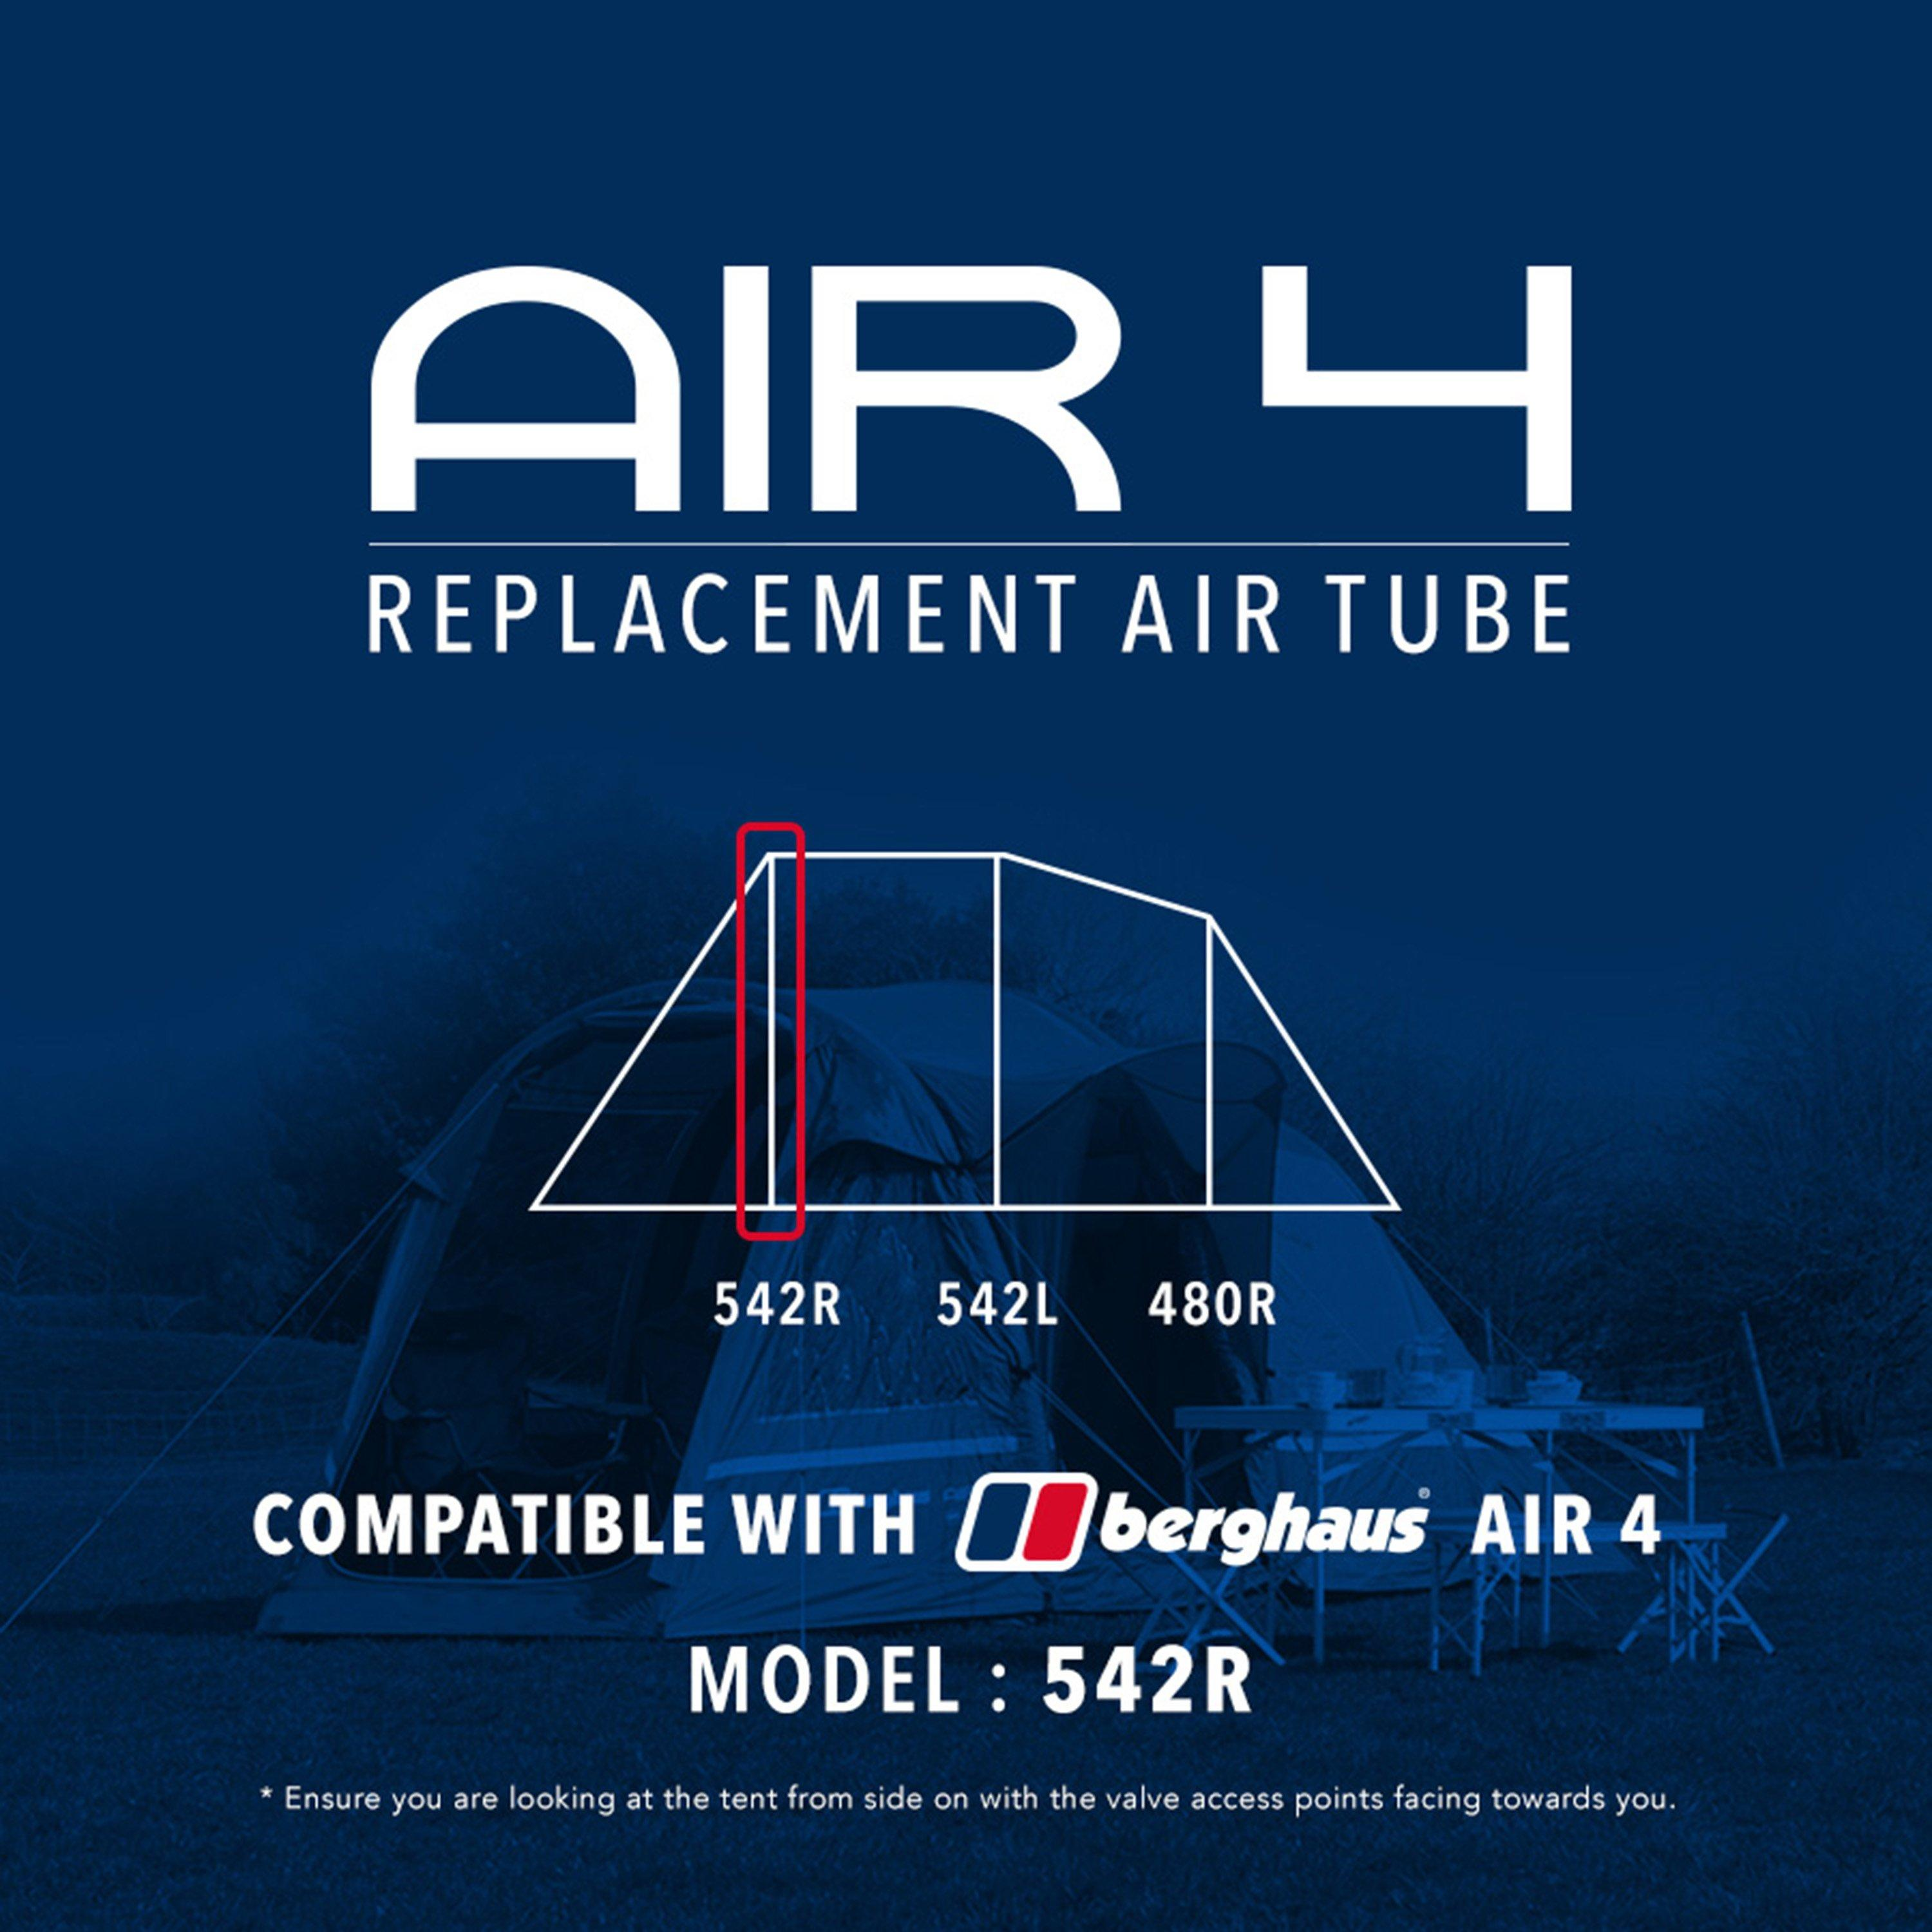 Berghaus Air 4 tent – replacement air tubes